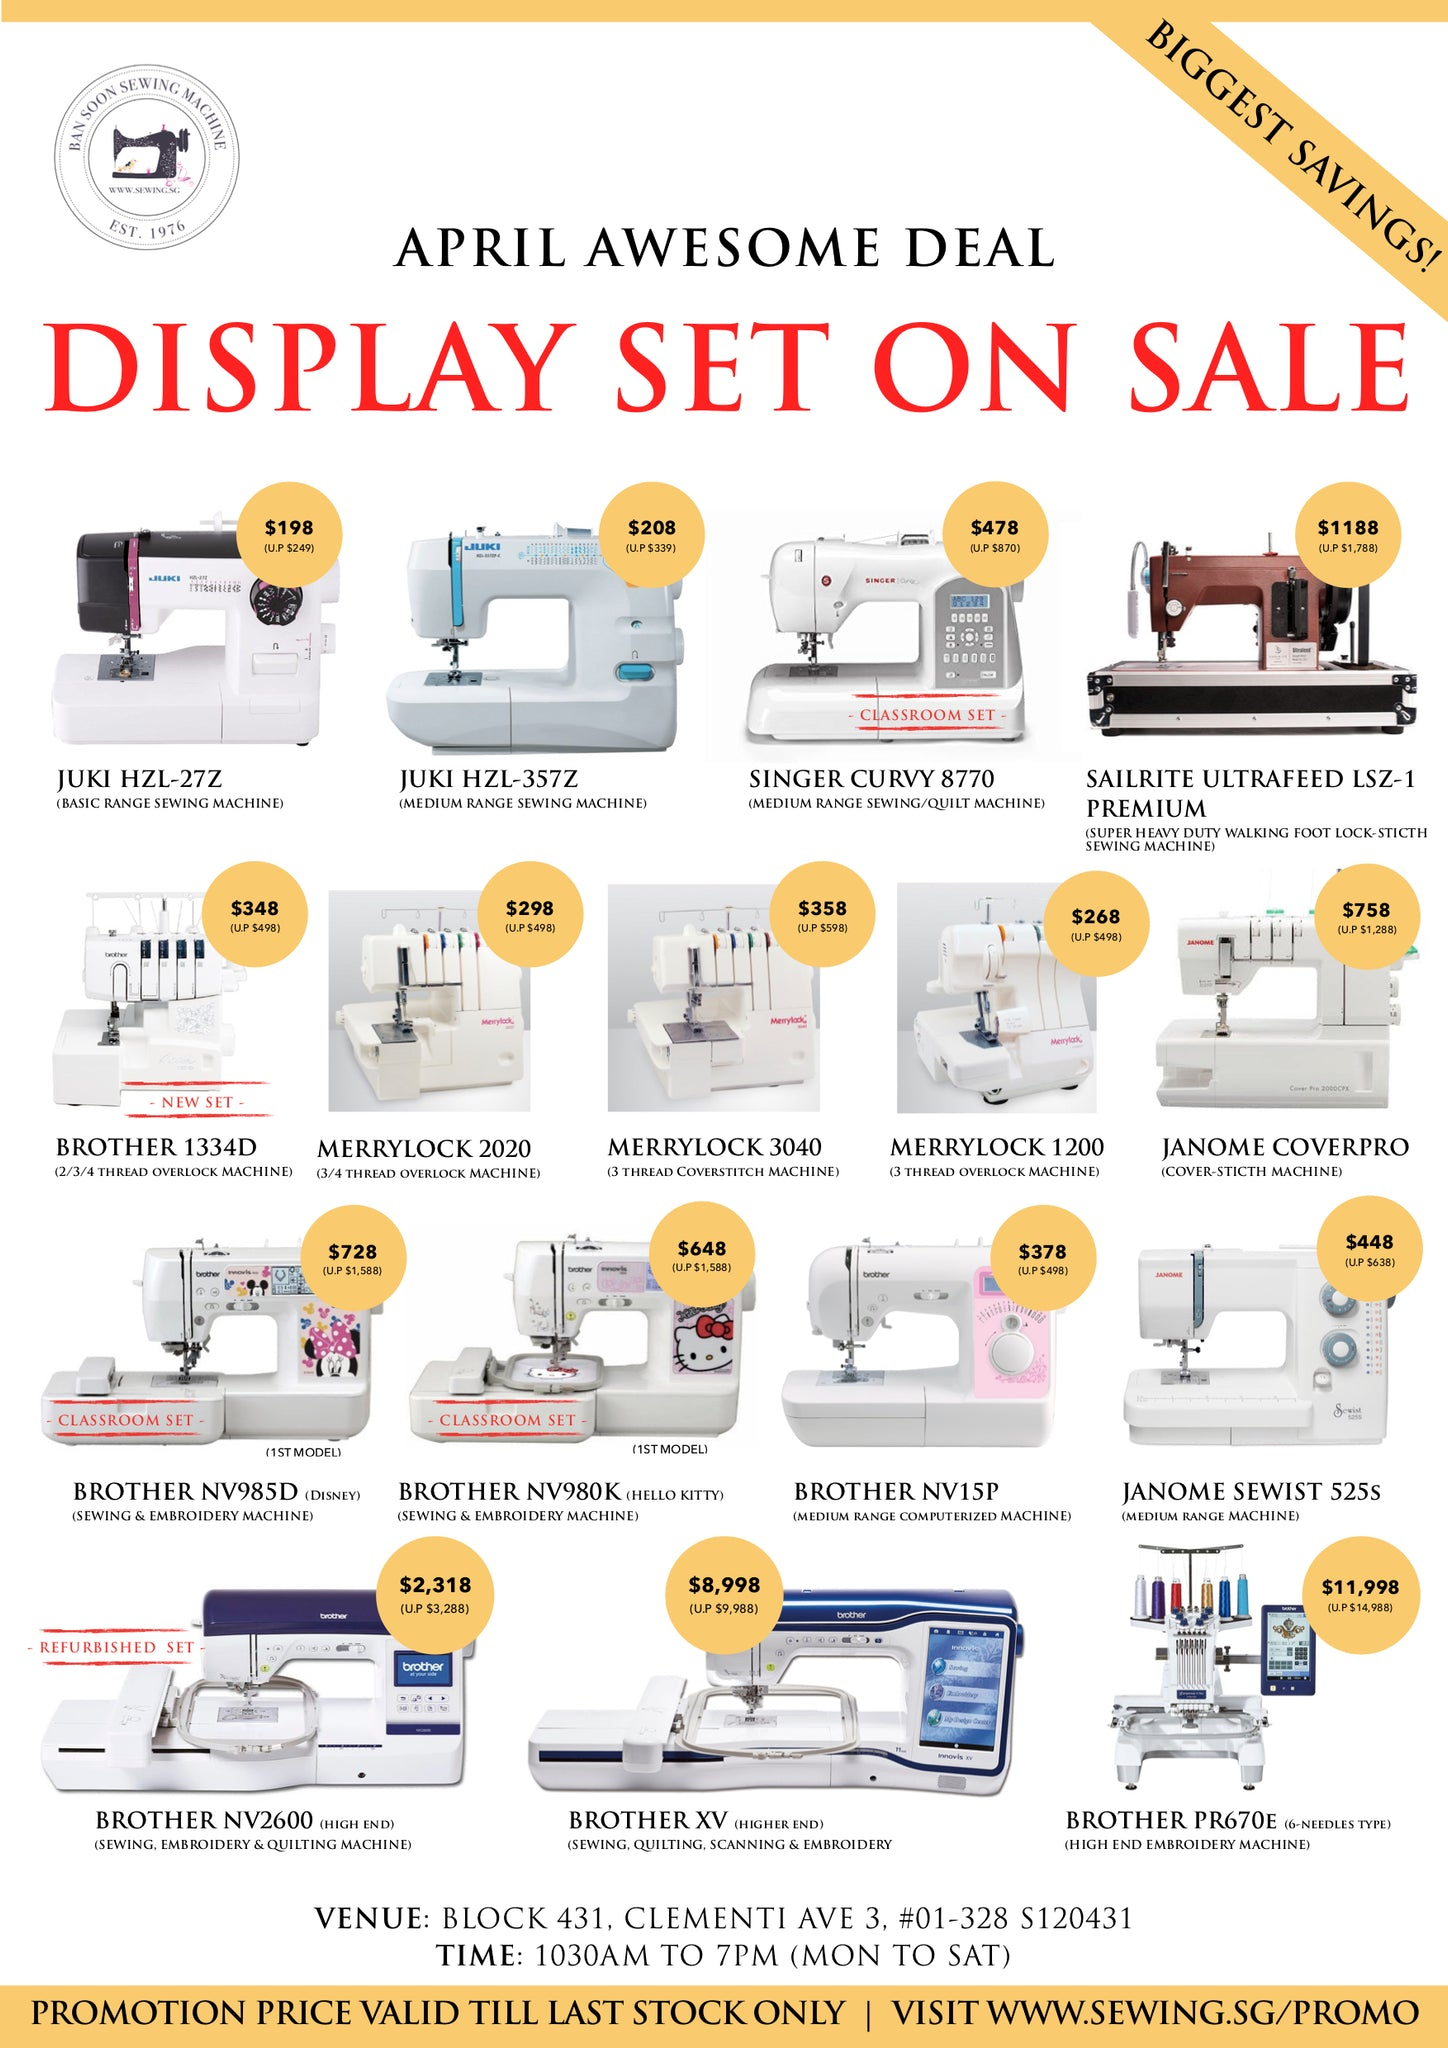 PROMOTION - DEMO MACHINE ON SALE AT WWW.SEWING.SG